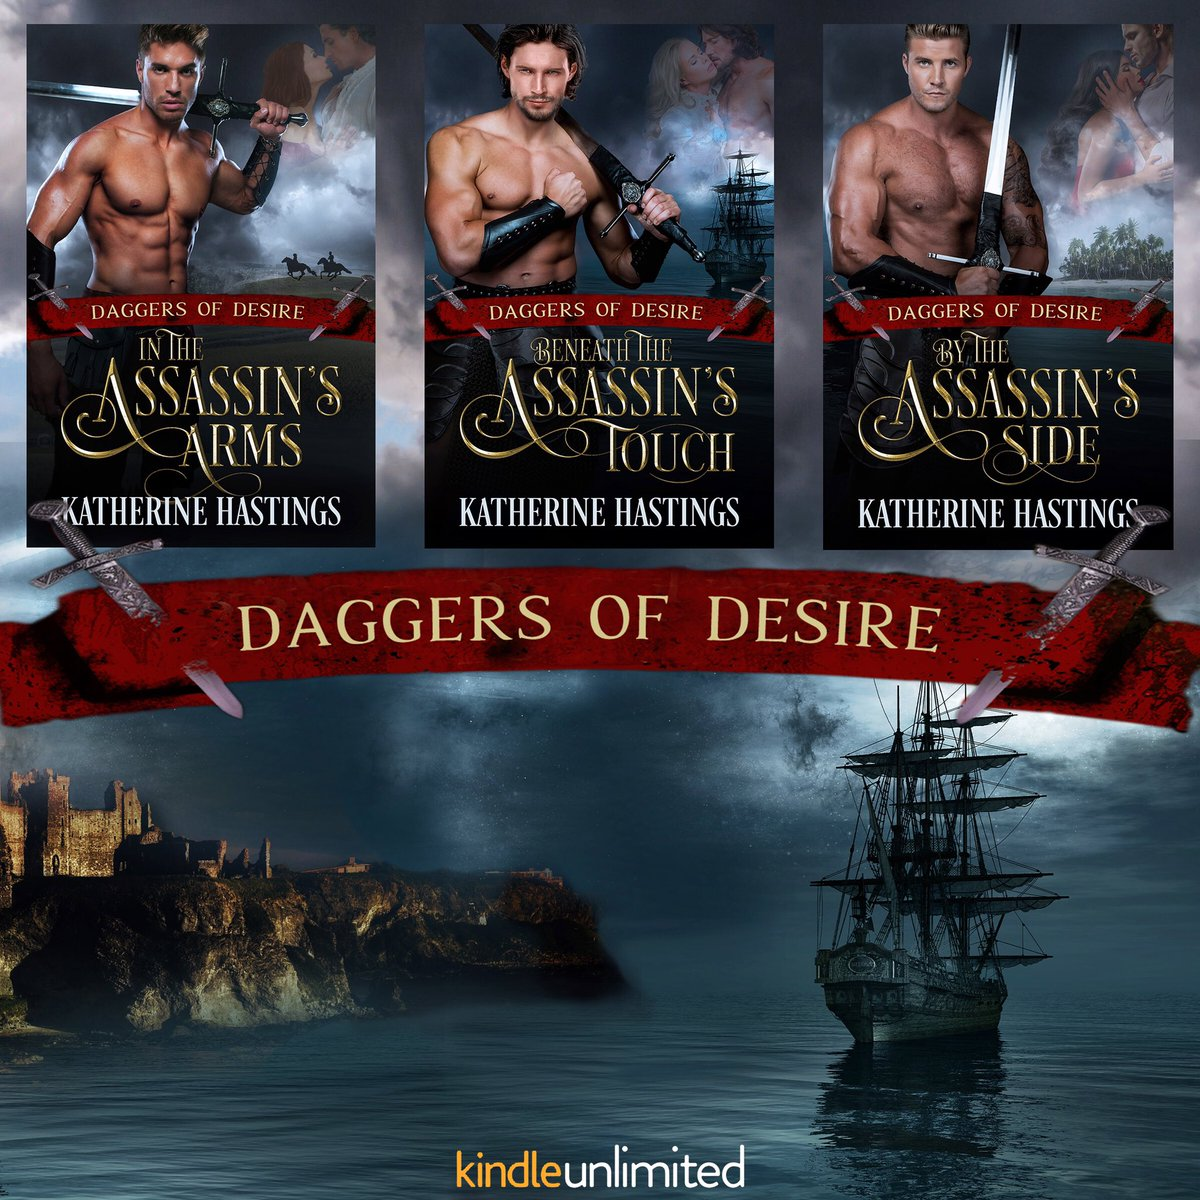 In the Assassin's Arms is FREE for a limited time! If you love action, adventure, and passion, start the series featuring sexy assassins, roguish pirates, and the strong women who fight beside them. Grab your copy of this historical romance today!  Amazon: